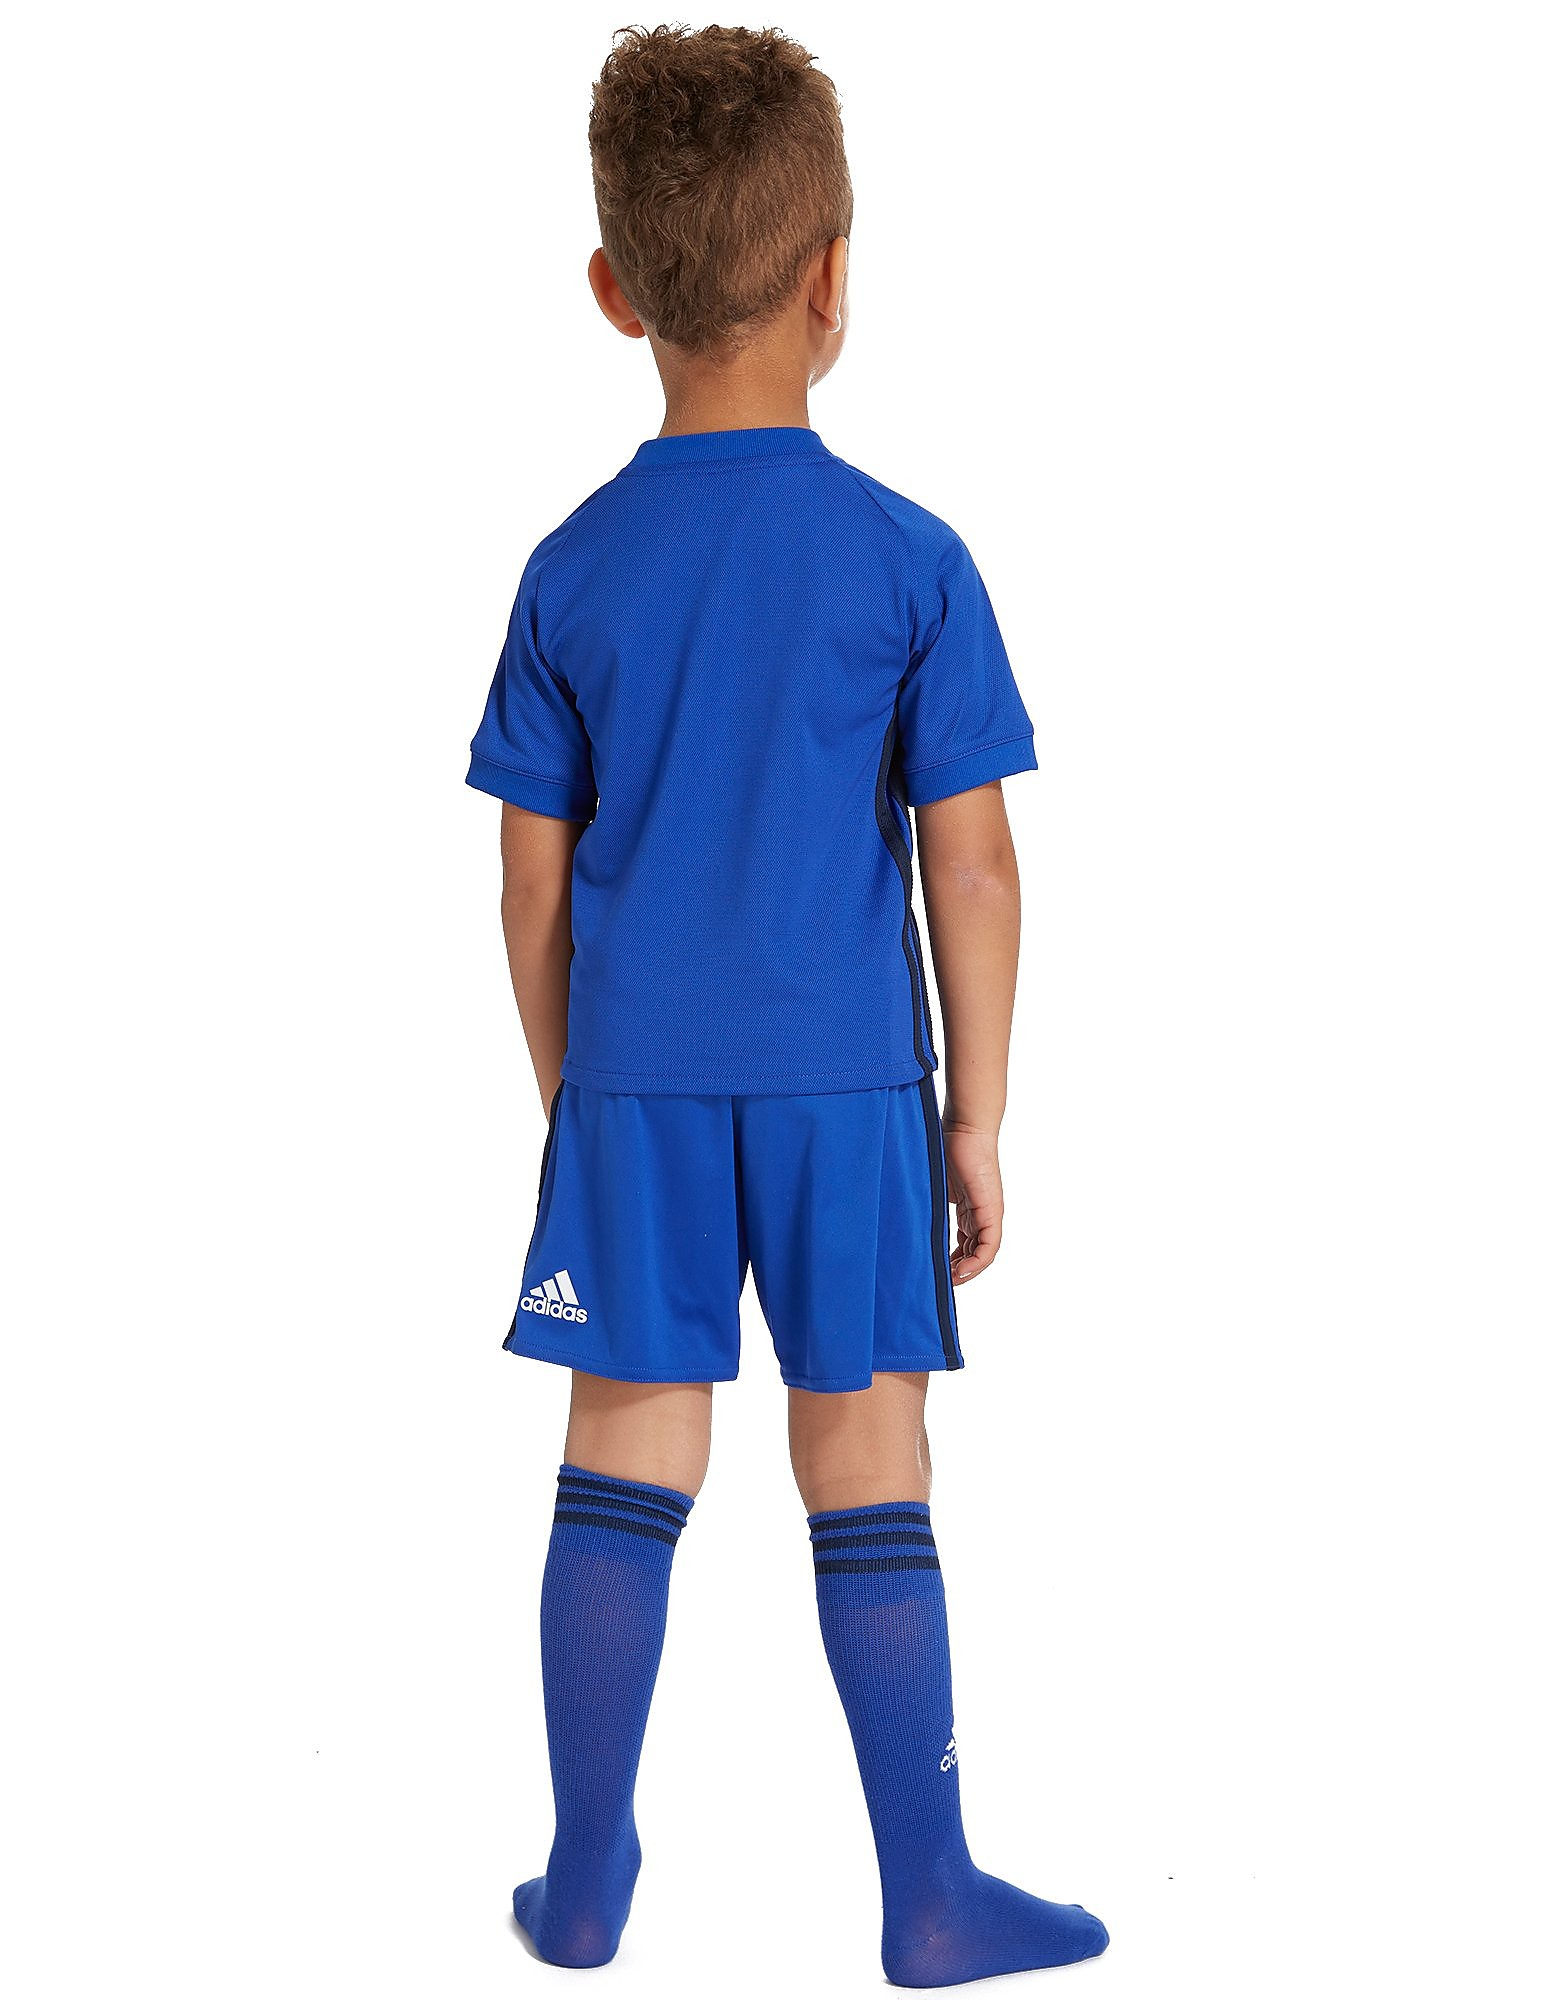 adidas Cardiff City 2017/18 Home Kit Children